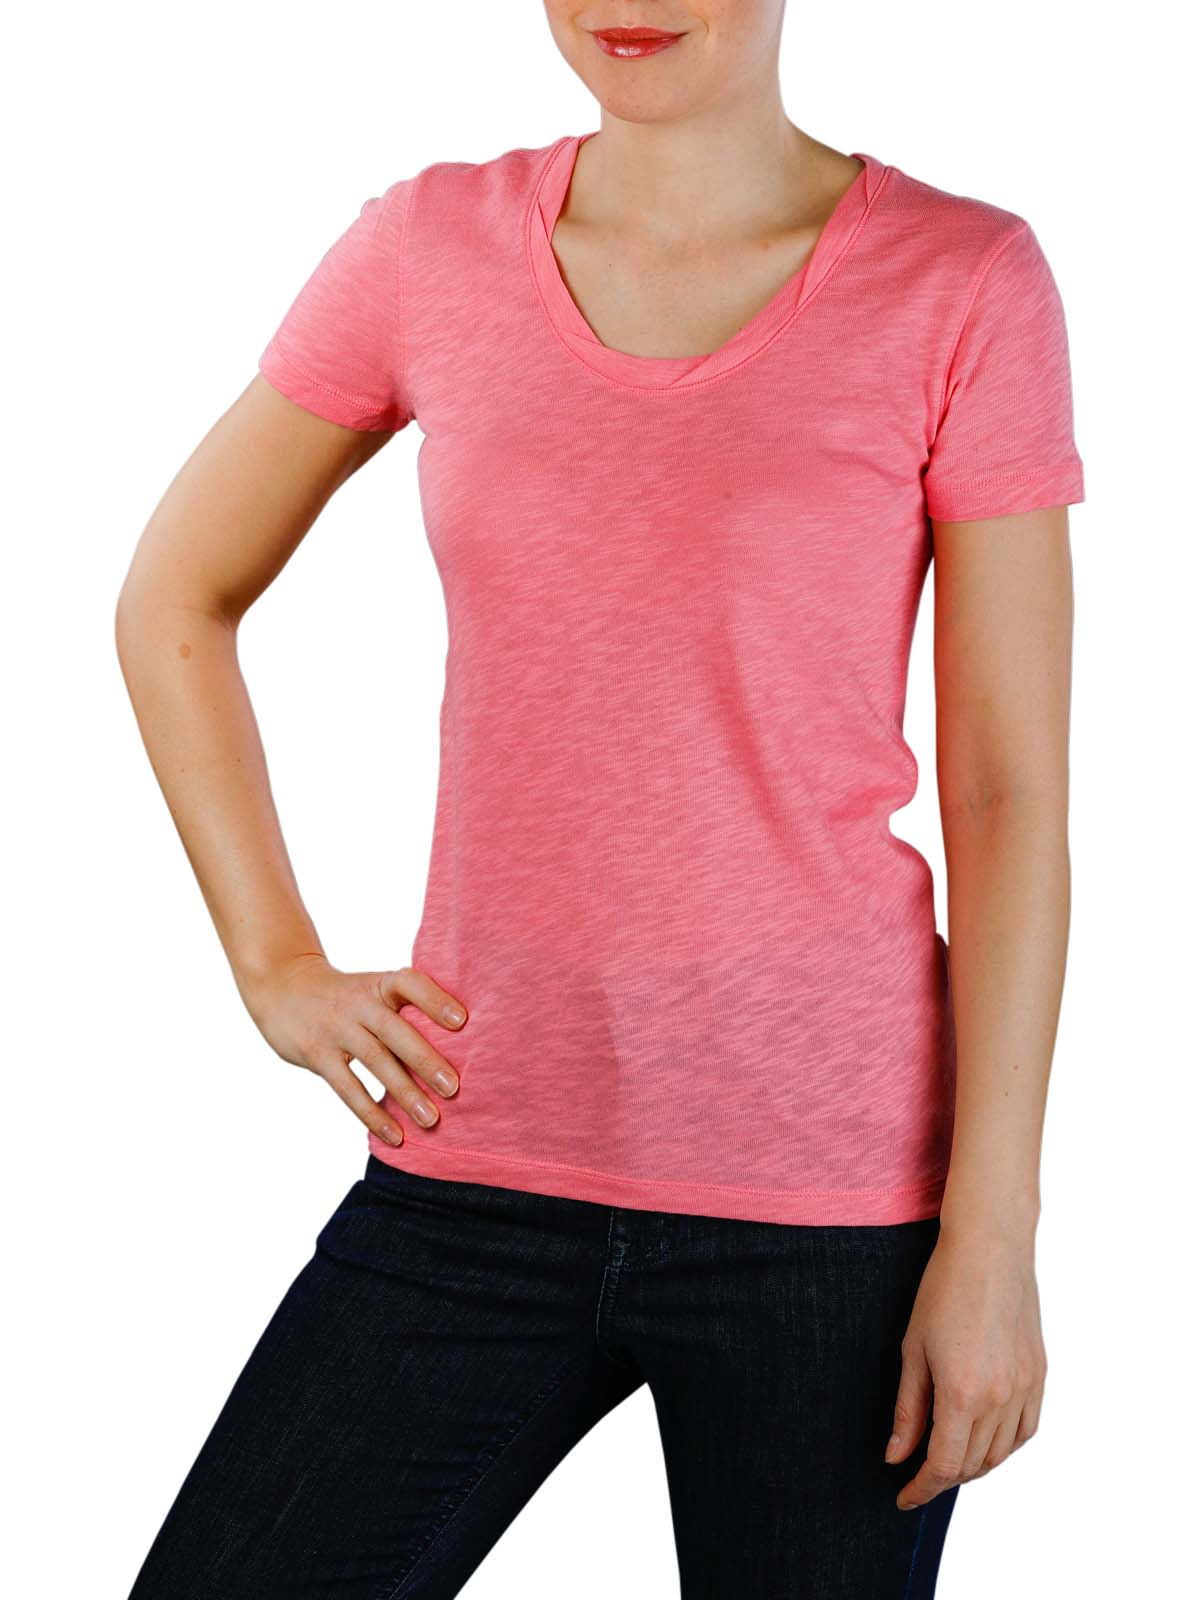 newest 6d90a 21555 Damen Bluse Marc O'Polo Women's Shirt | Free Shipping on ...